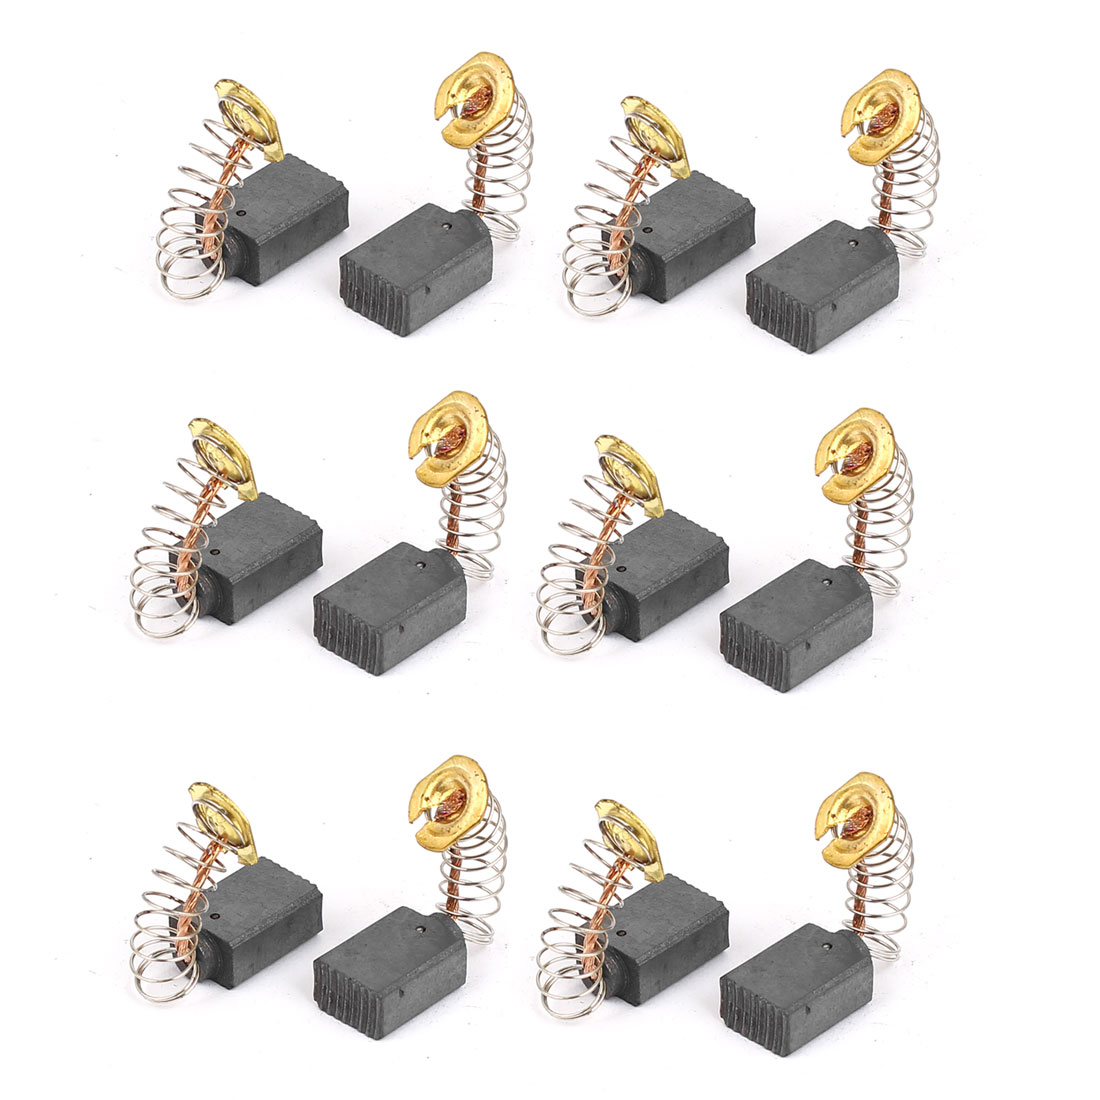 6 Pairs Electric Drill Motor Rotary Power Tool Carbon Brush 13mmx9mmx6mm Grey